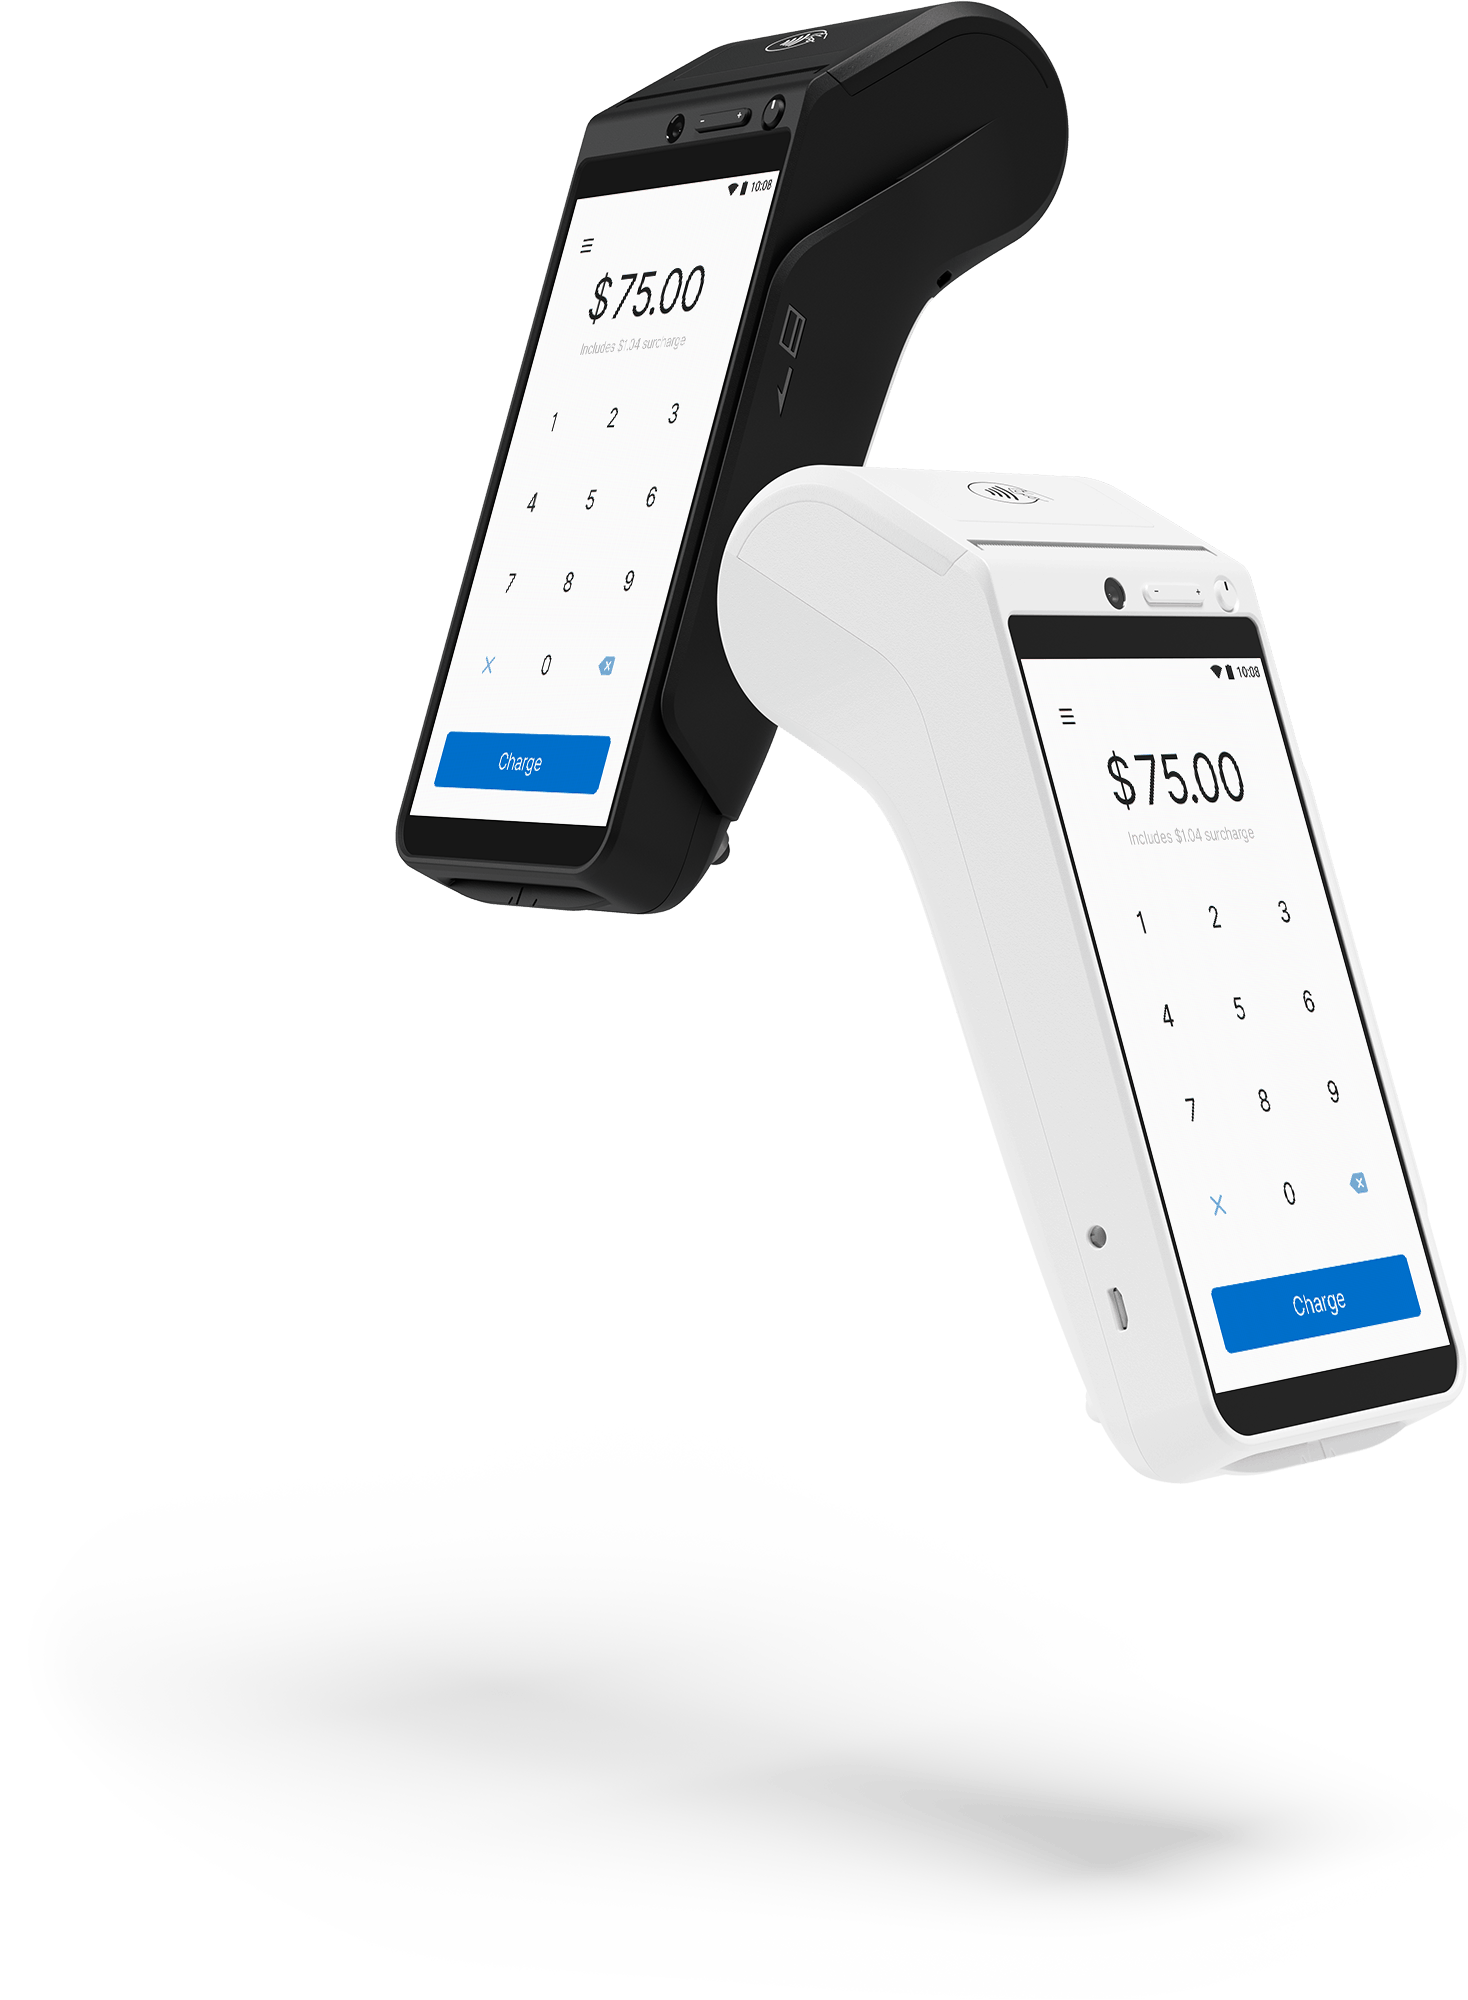 eftpos-payment-terminal-for-Australian-business-owners